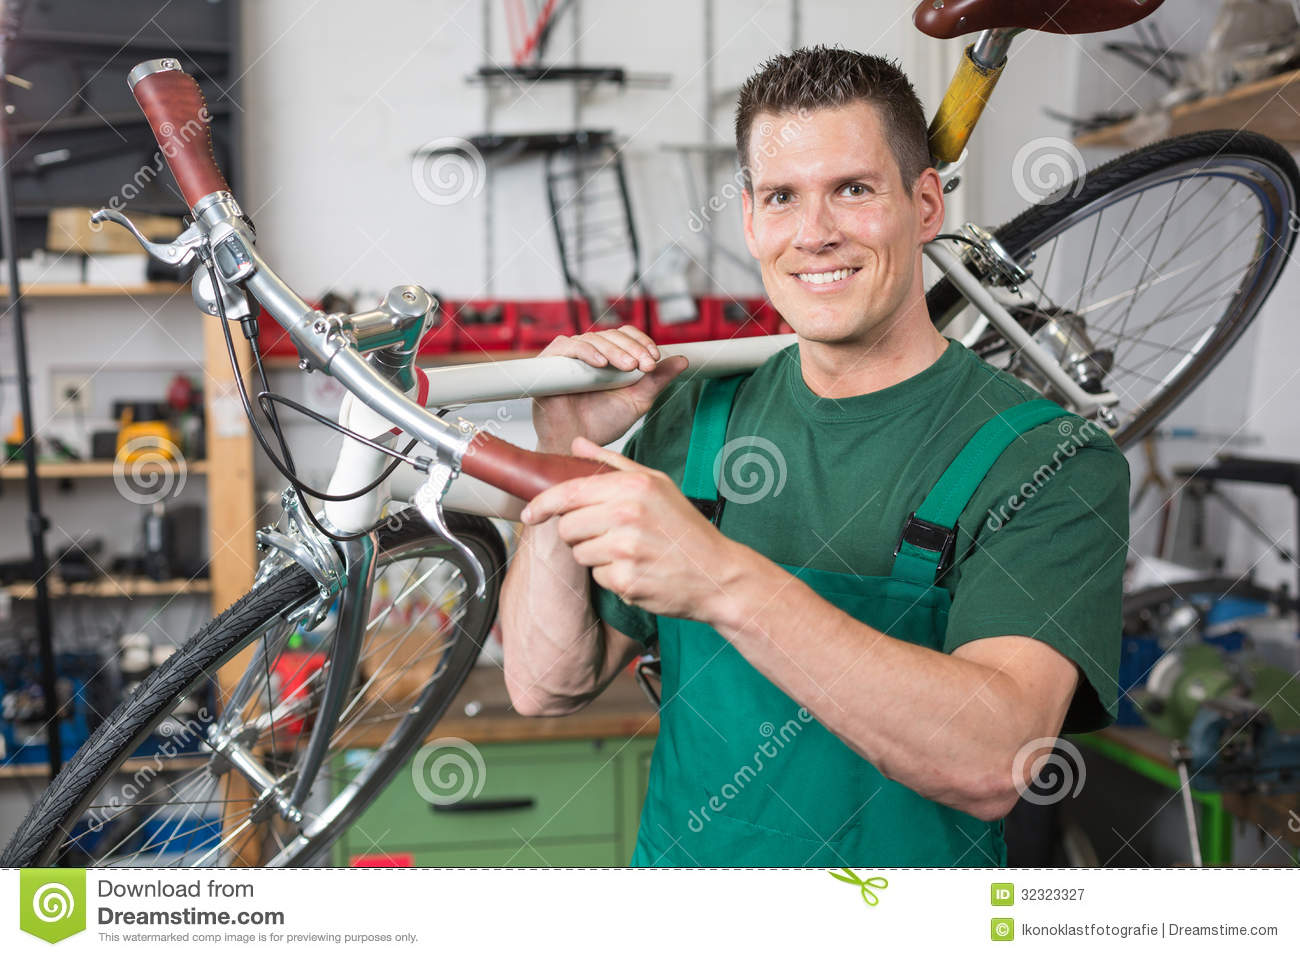 Bicycle mechanic carrying a bike in workshop smiling